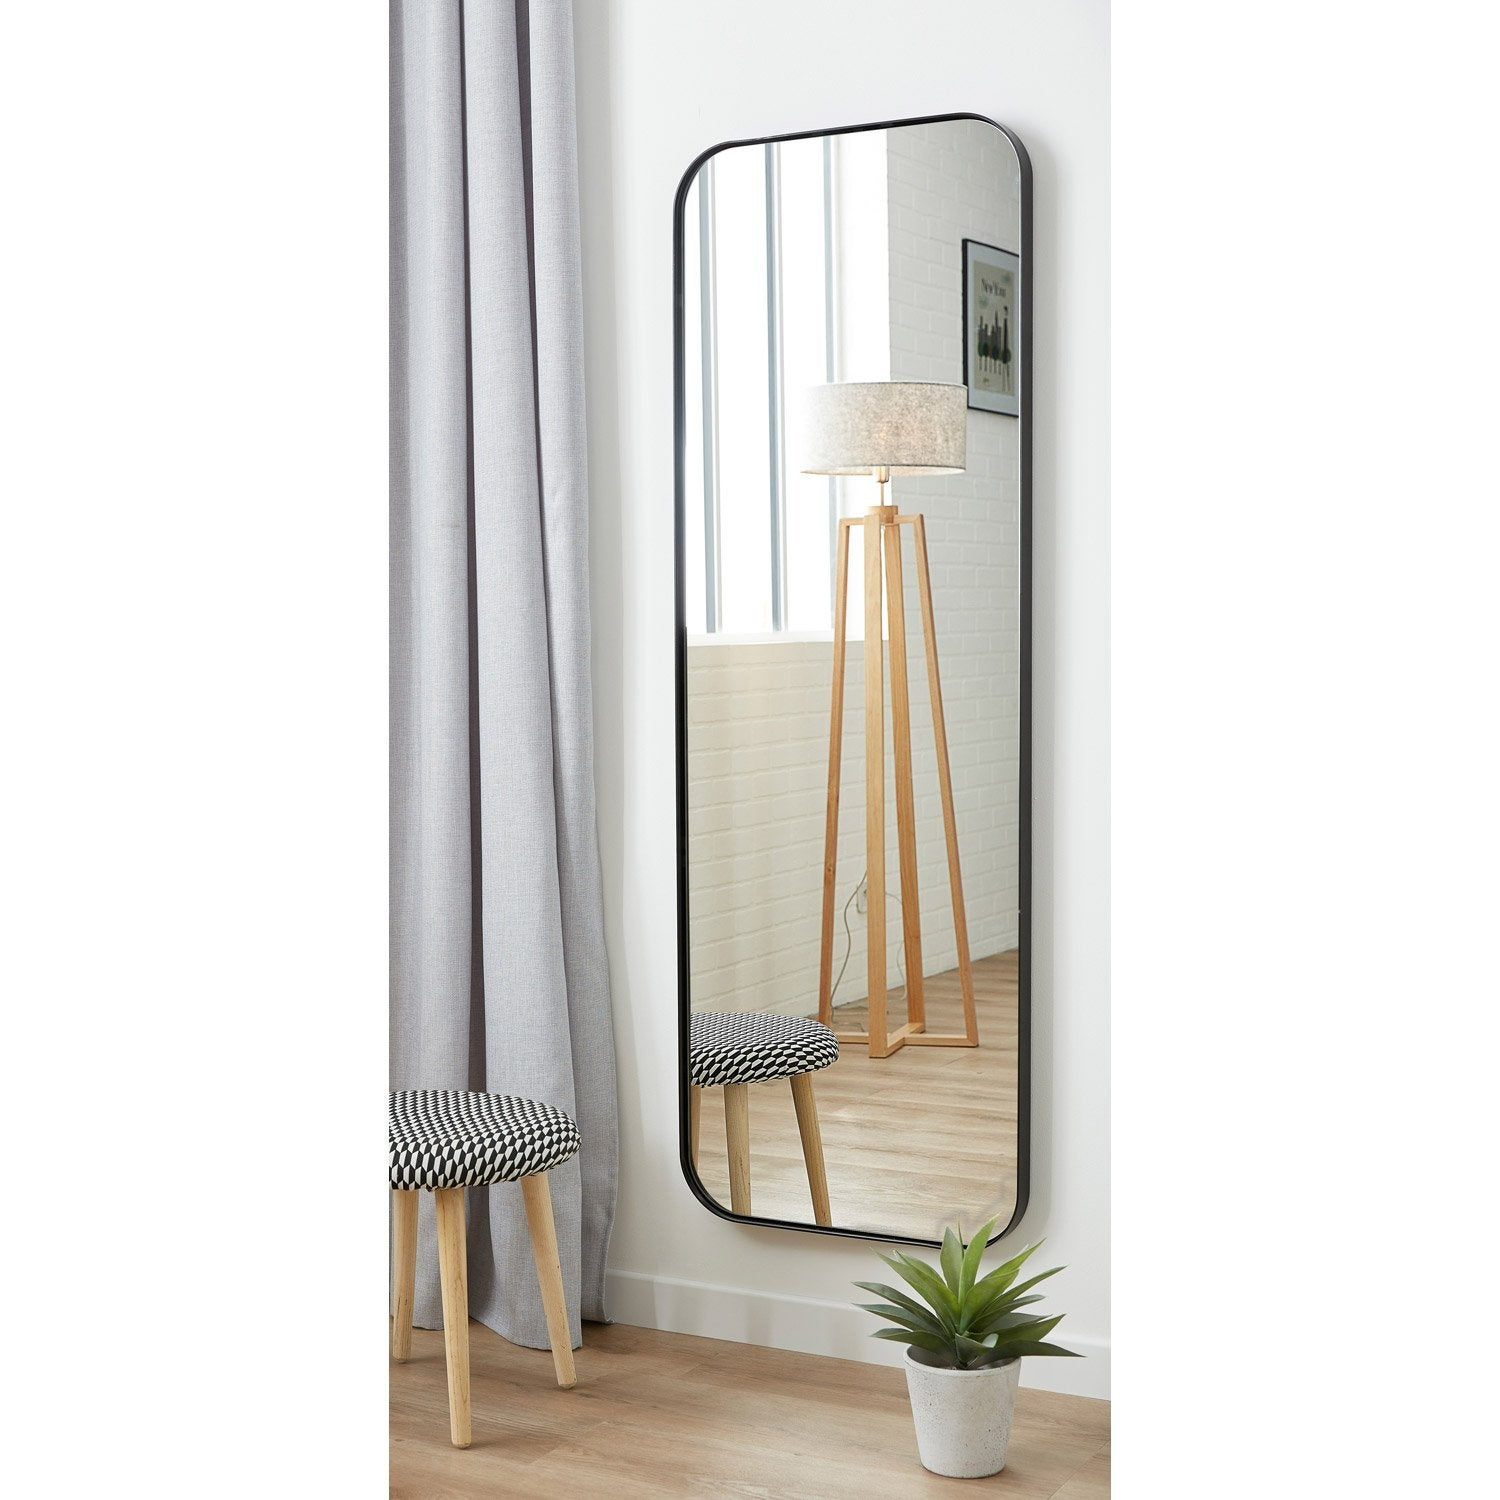 Etagere riviera maison affordable accroche miroir leroy for Accroche miroir